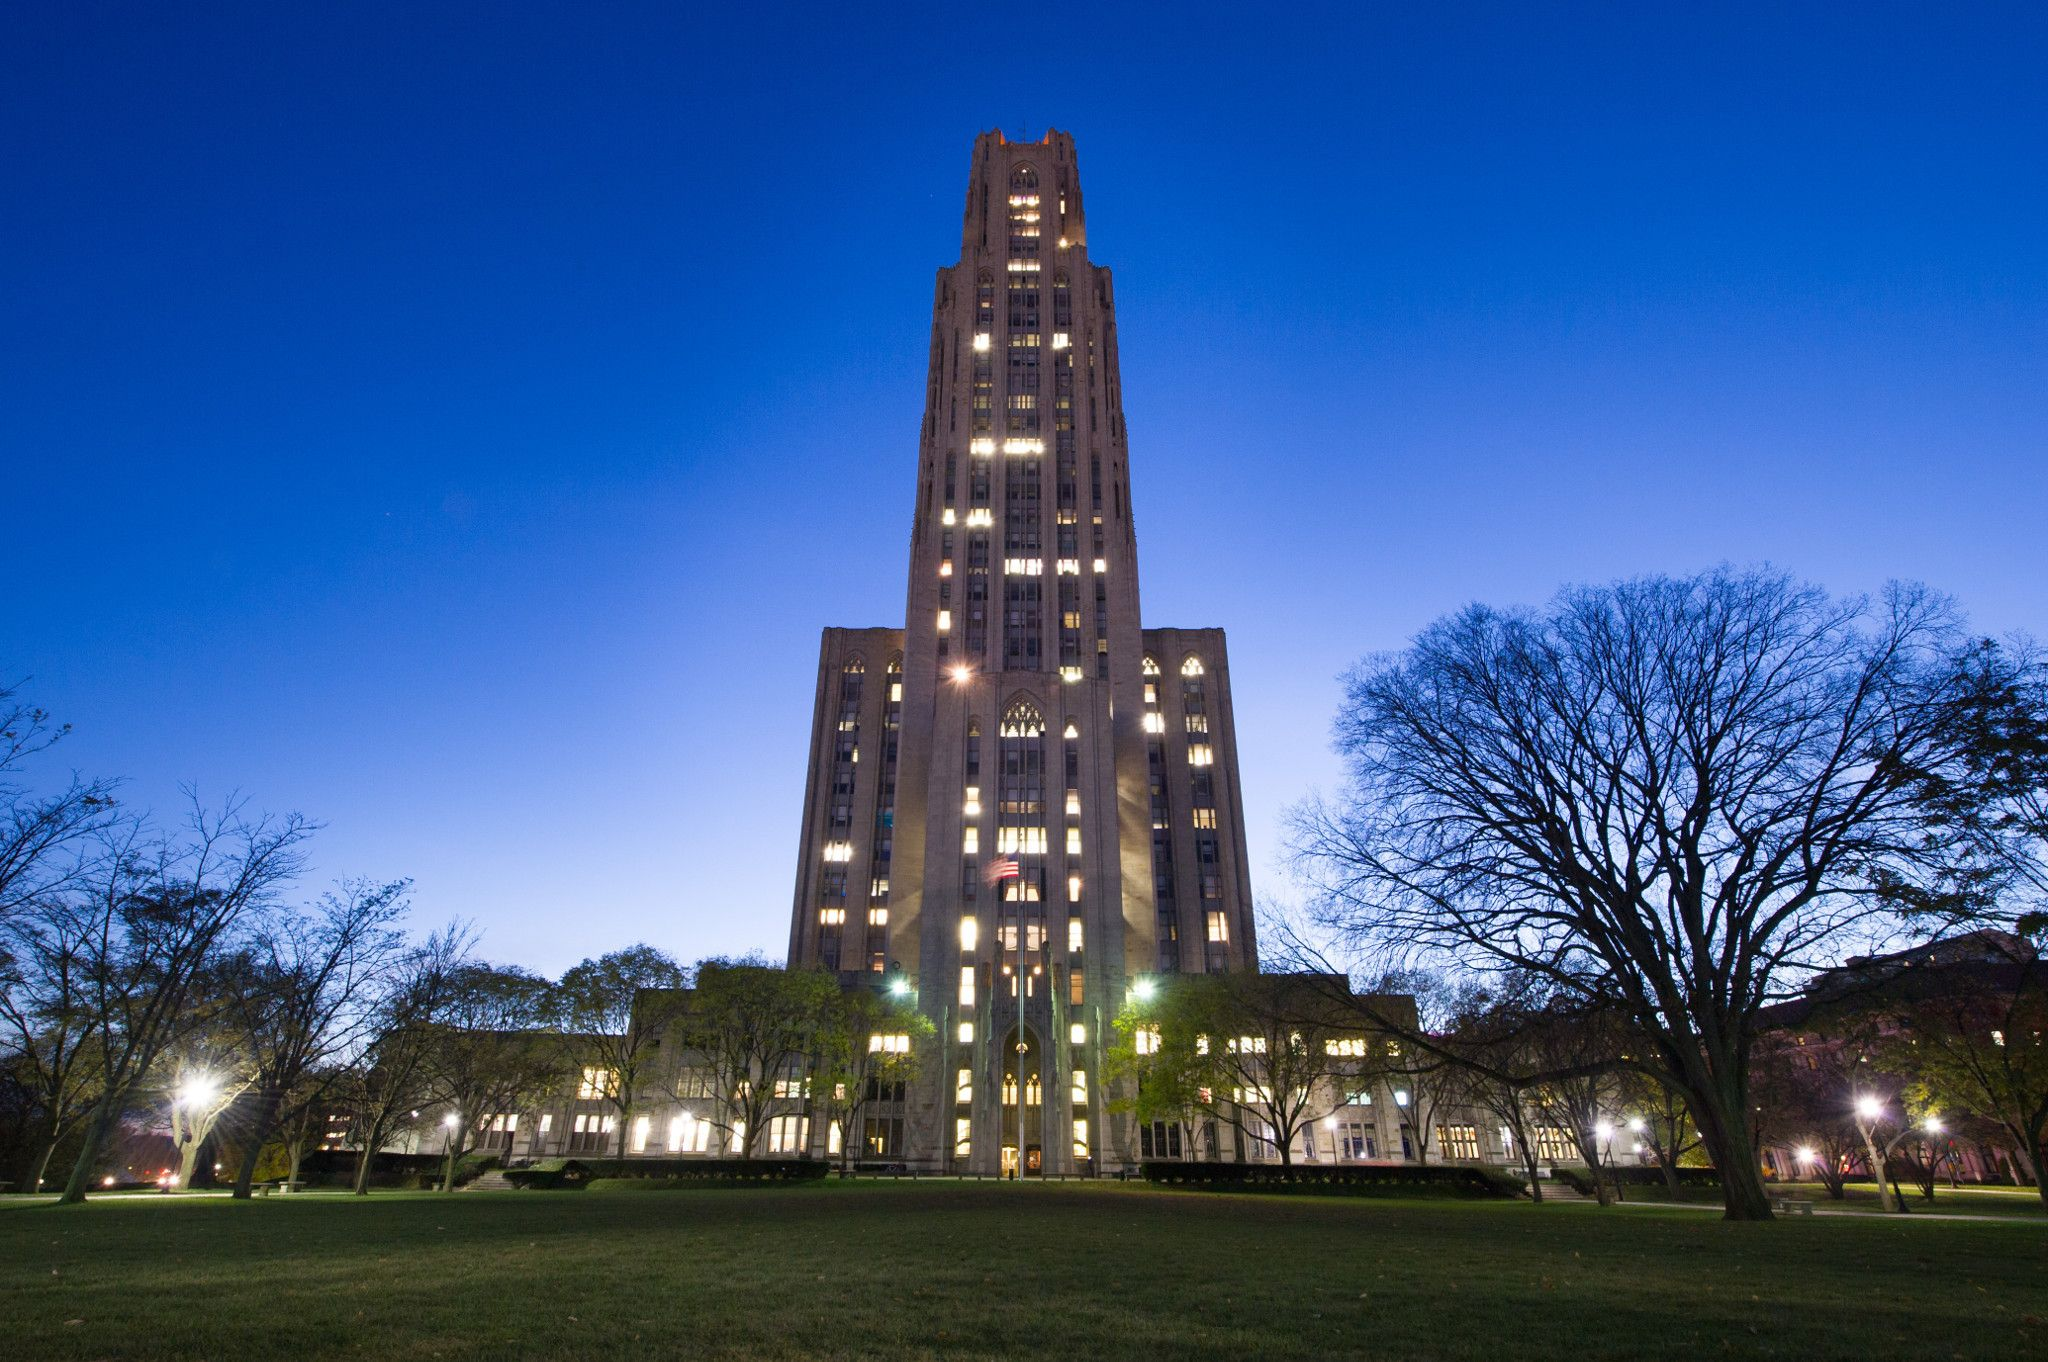 A photograph of the Cathedral of Learning at night